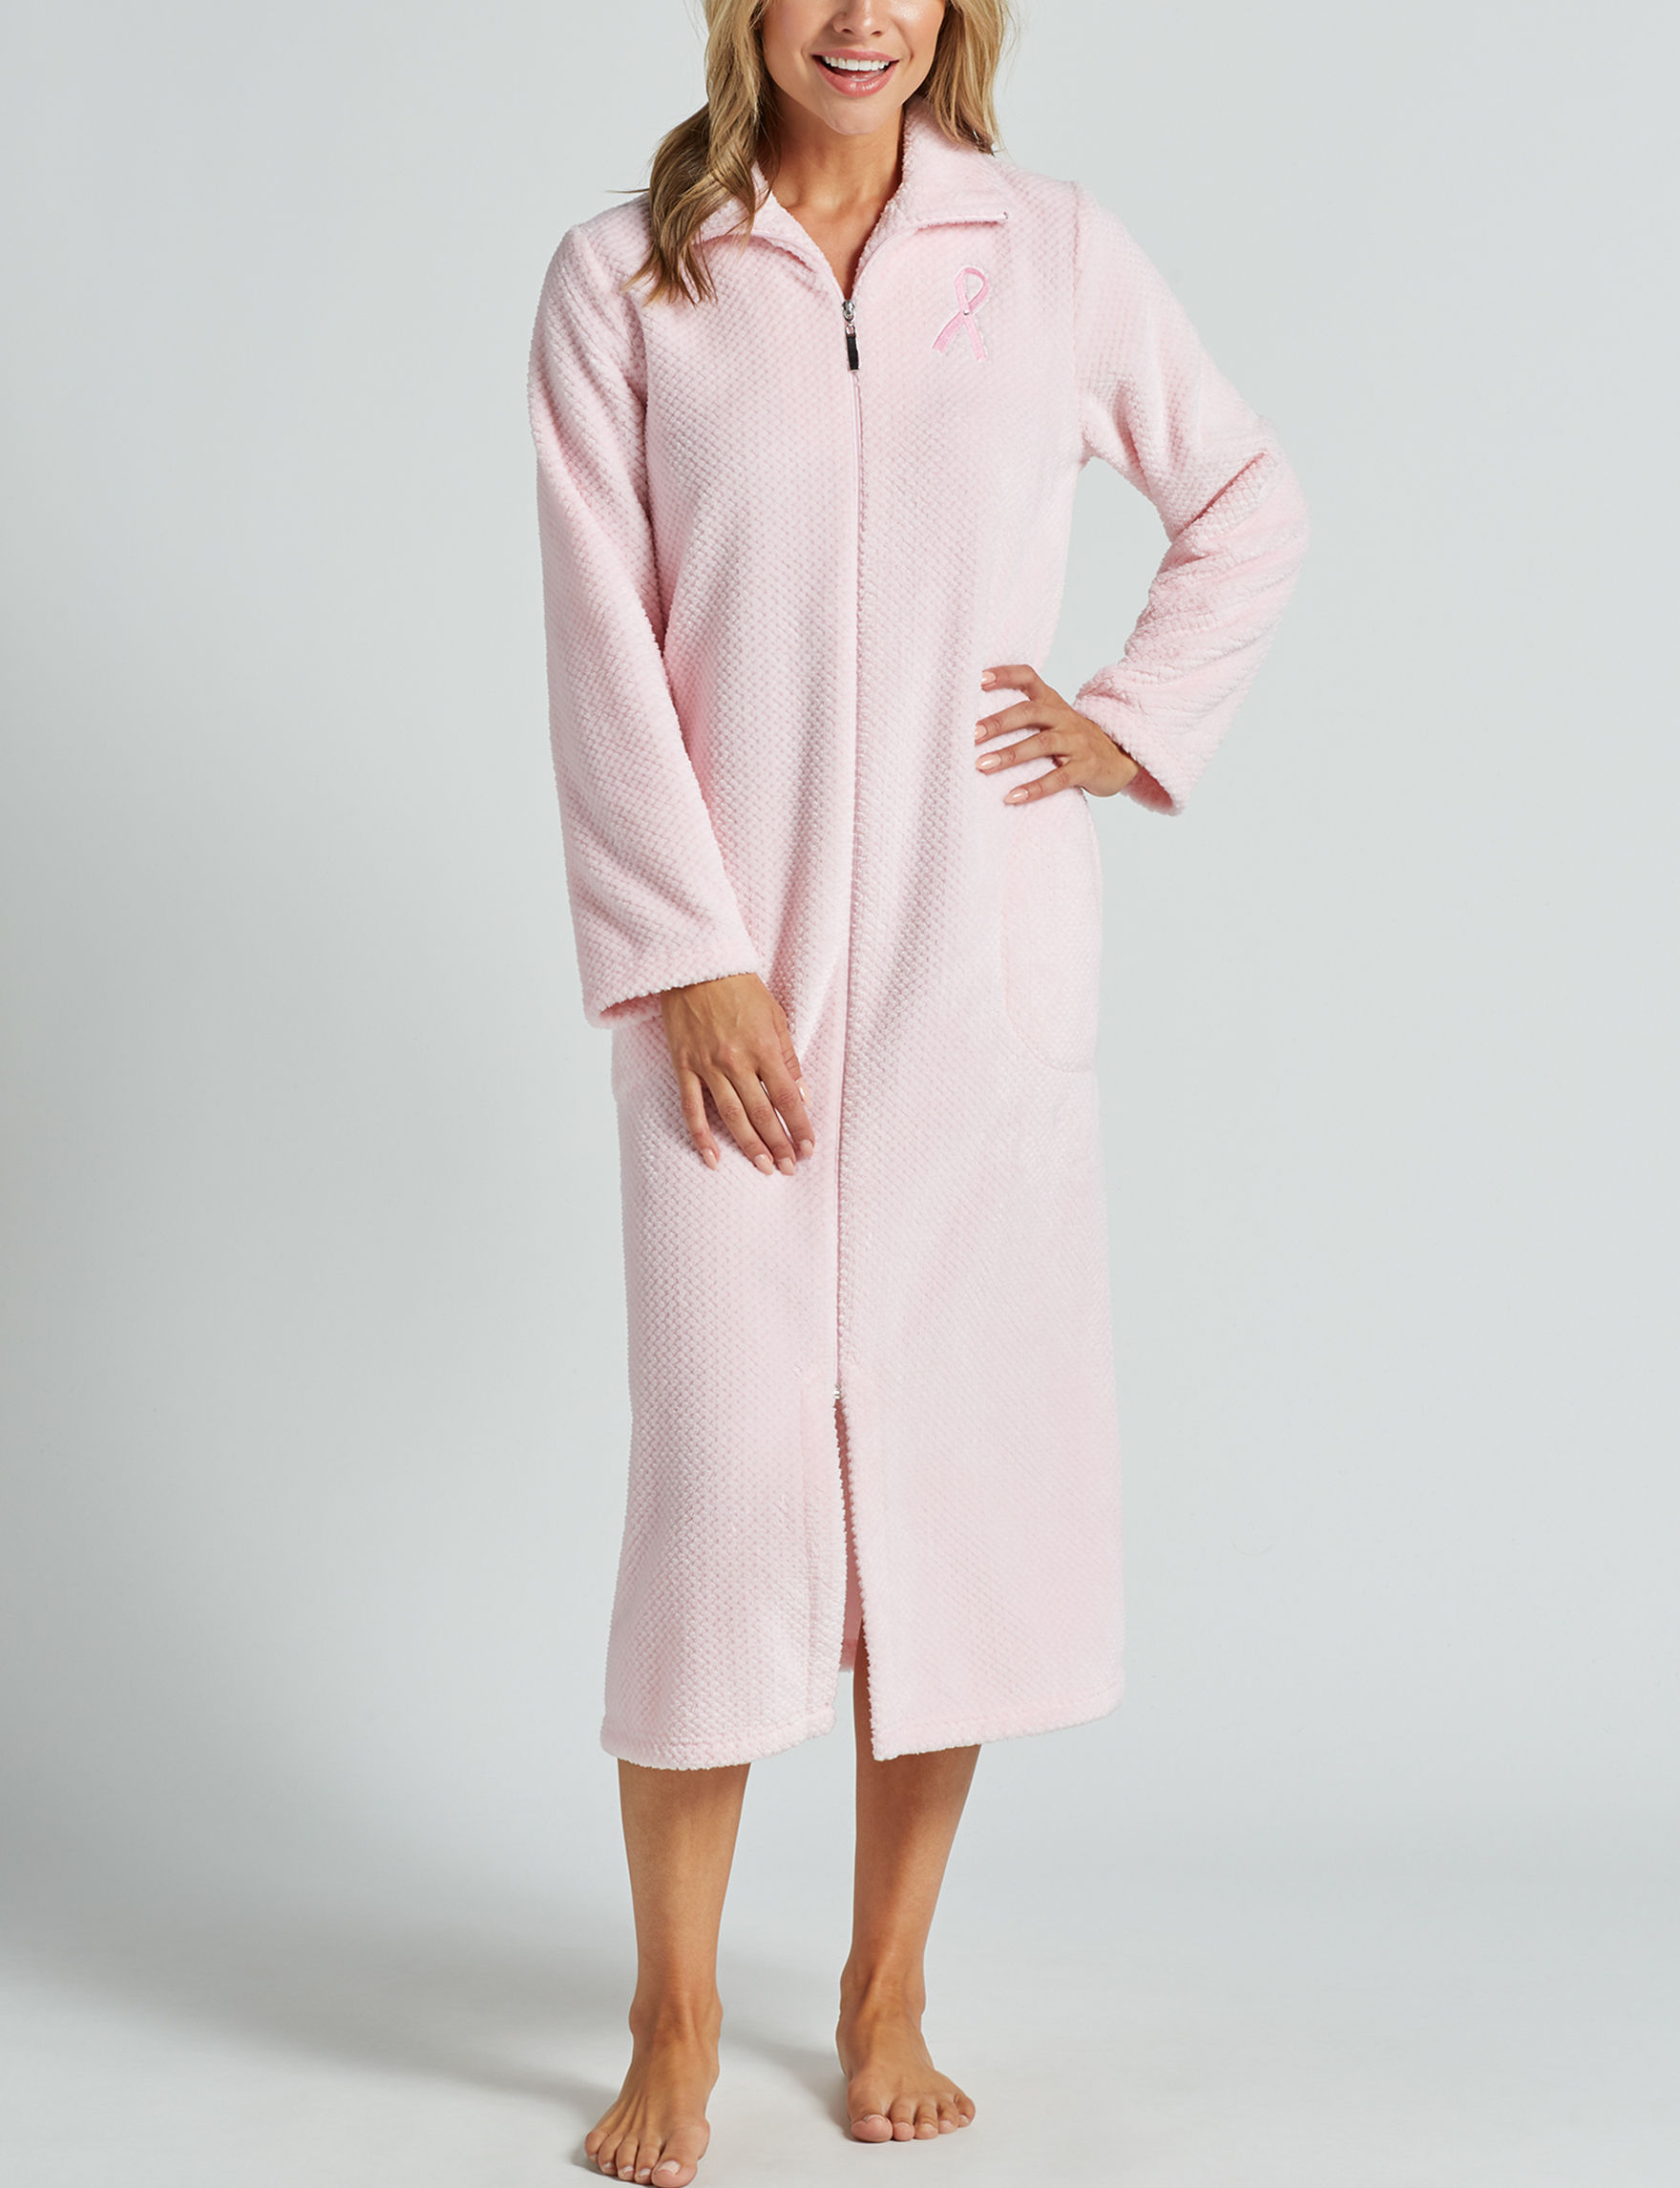 Hannah Soft Pink Robes, Wraps & Dusters